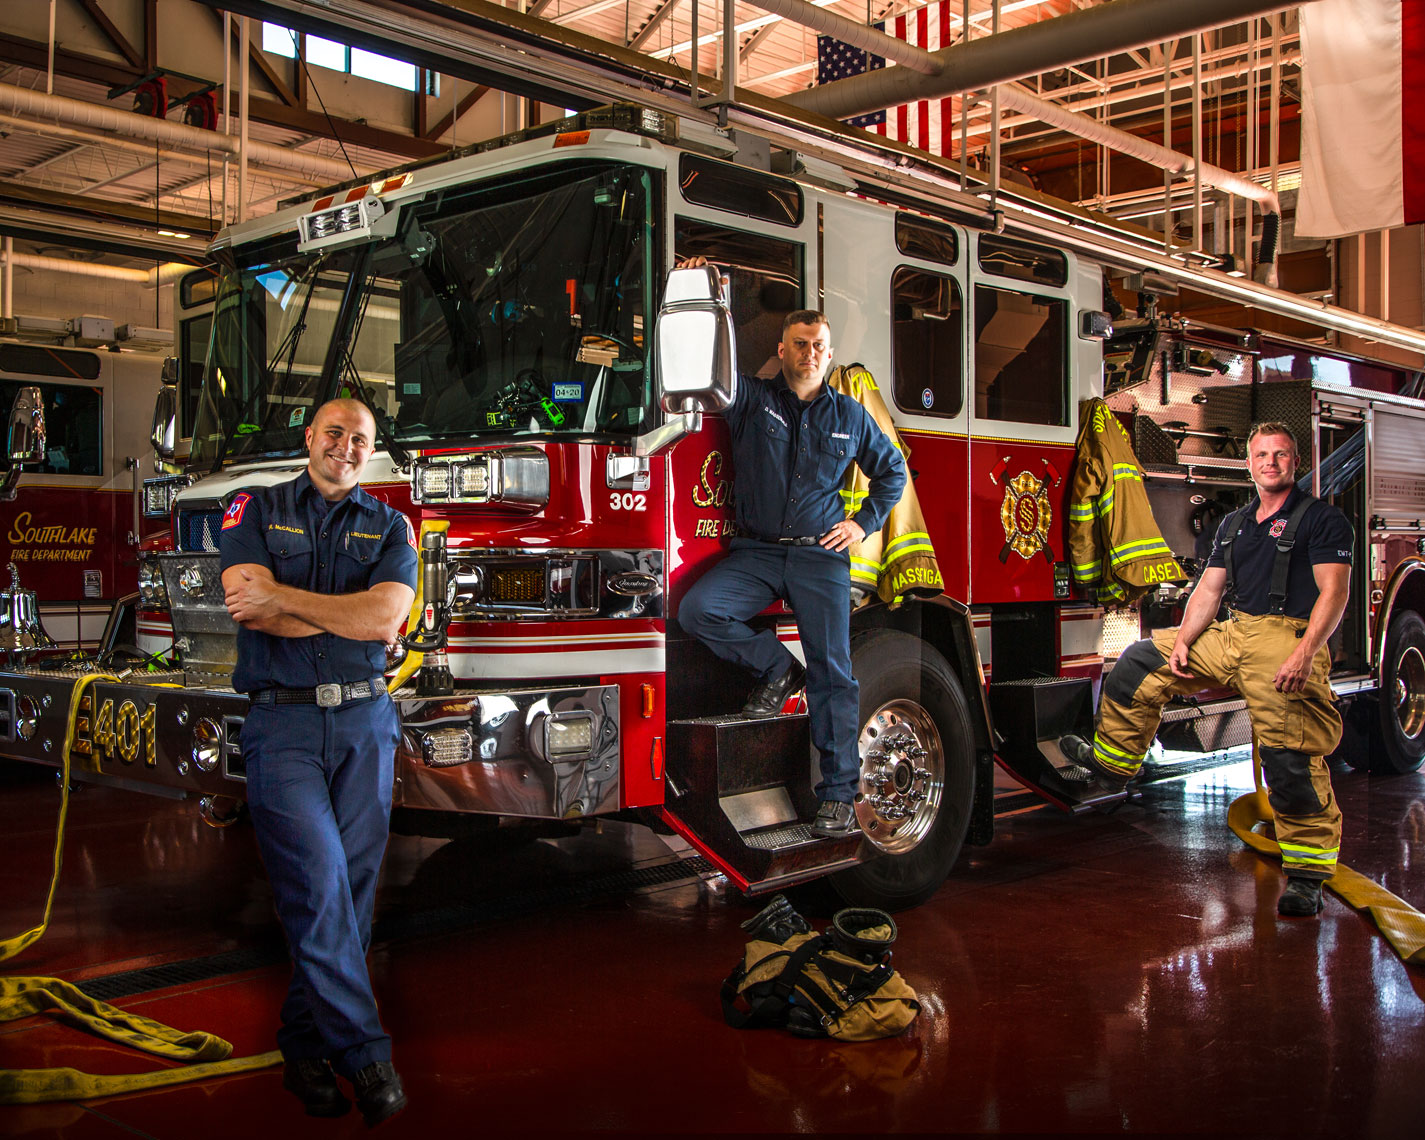 firefightersphotography